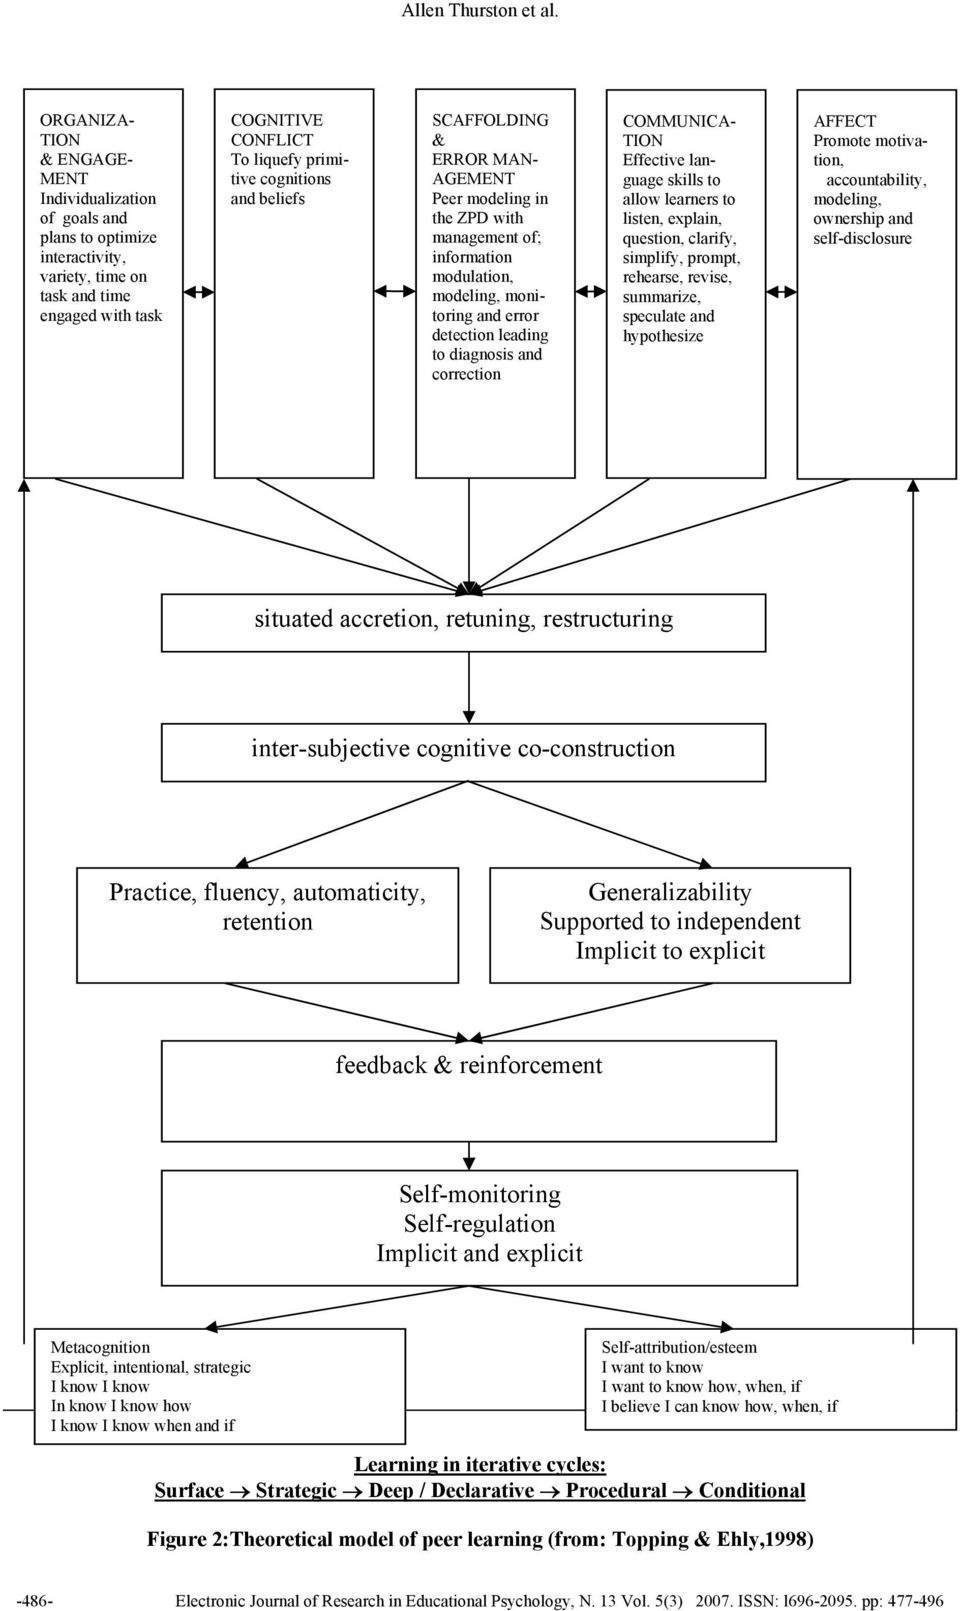 beliefs SCAFFOLDING & ERROR MAN- AGEMENT Peer modeling in the ZPD with management of; information modulation, modeling, monitoring and error detection leading to diagnosis and correction COMMUNICA-